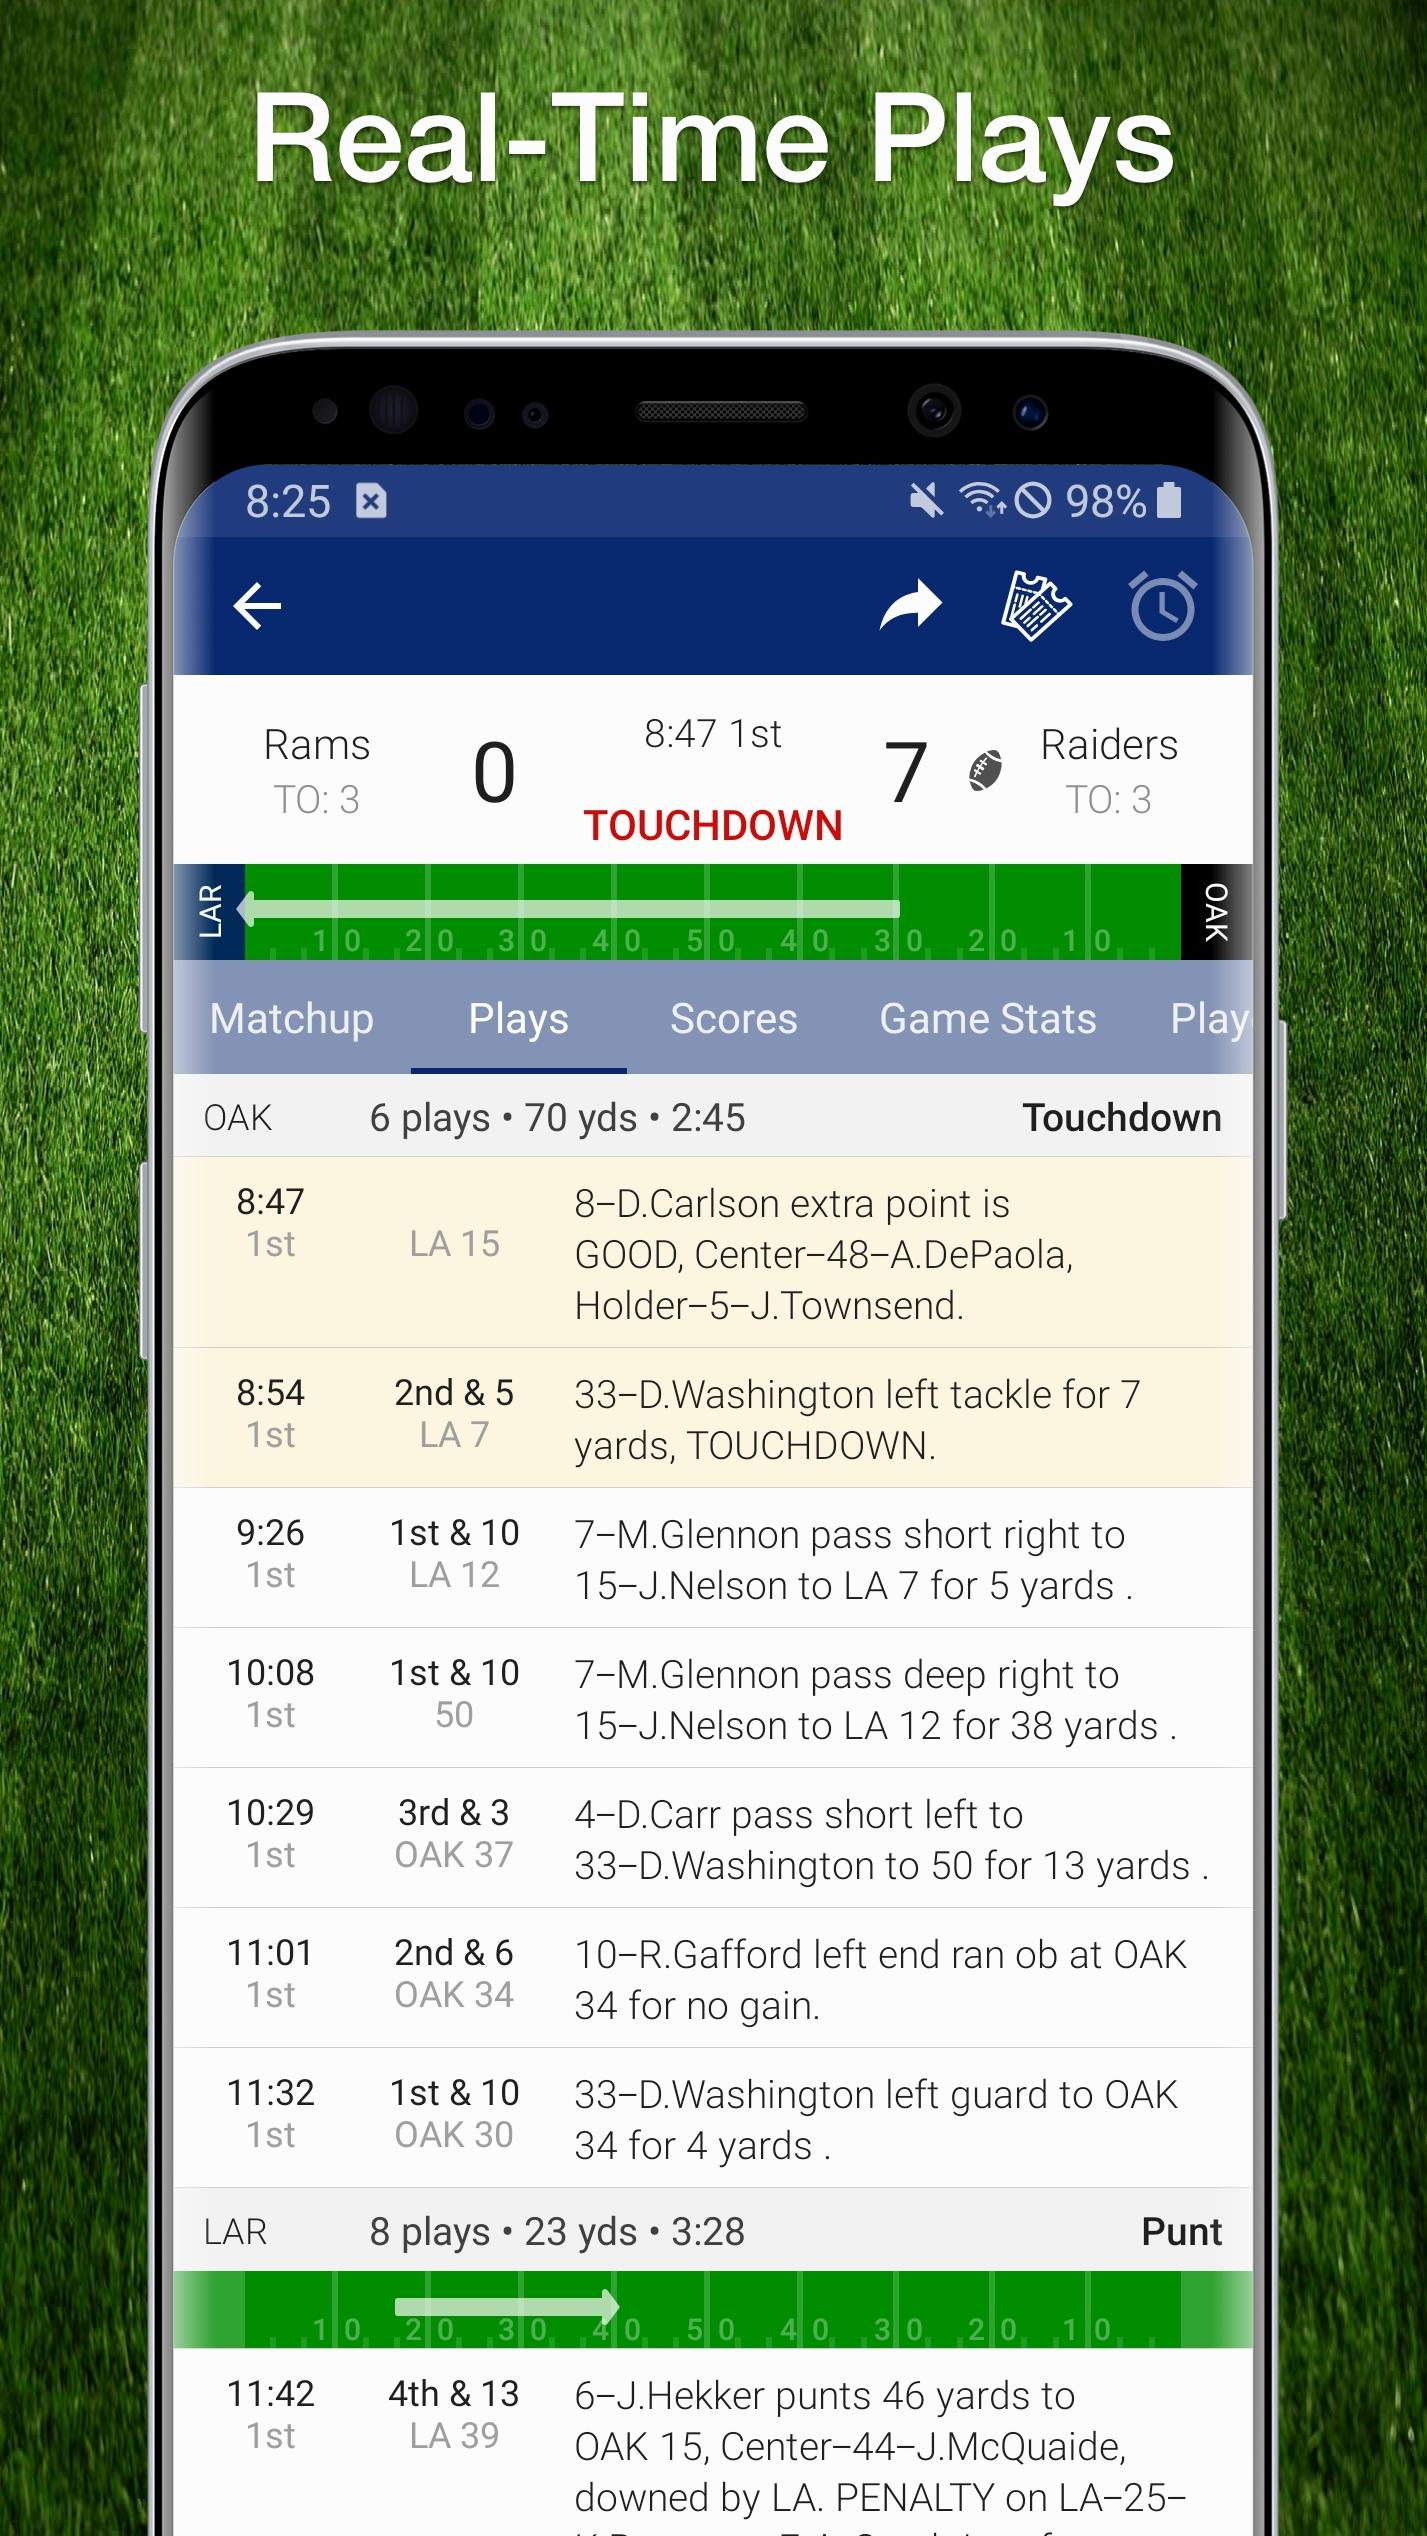 Football Nfl Live Scores Stats Schedules 2020 For Android Apk Download